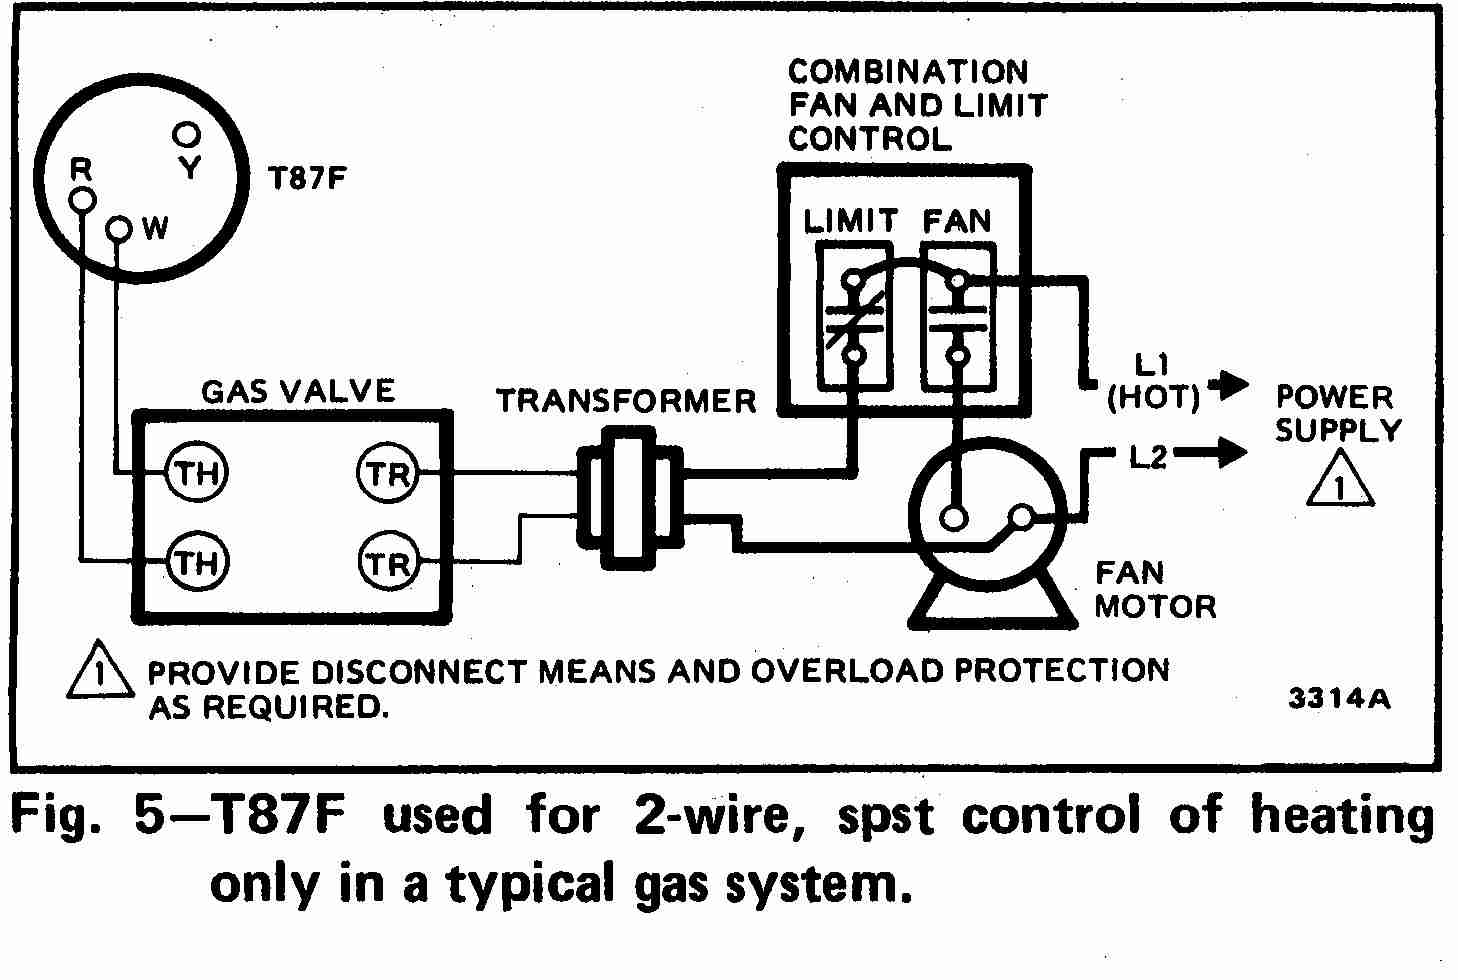 TT_T87F_0002_2Wg_DJF room thermostat wiring diagrams for hvac systems zone valve wiring diagram at bayanpartner.co